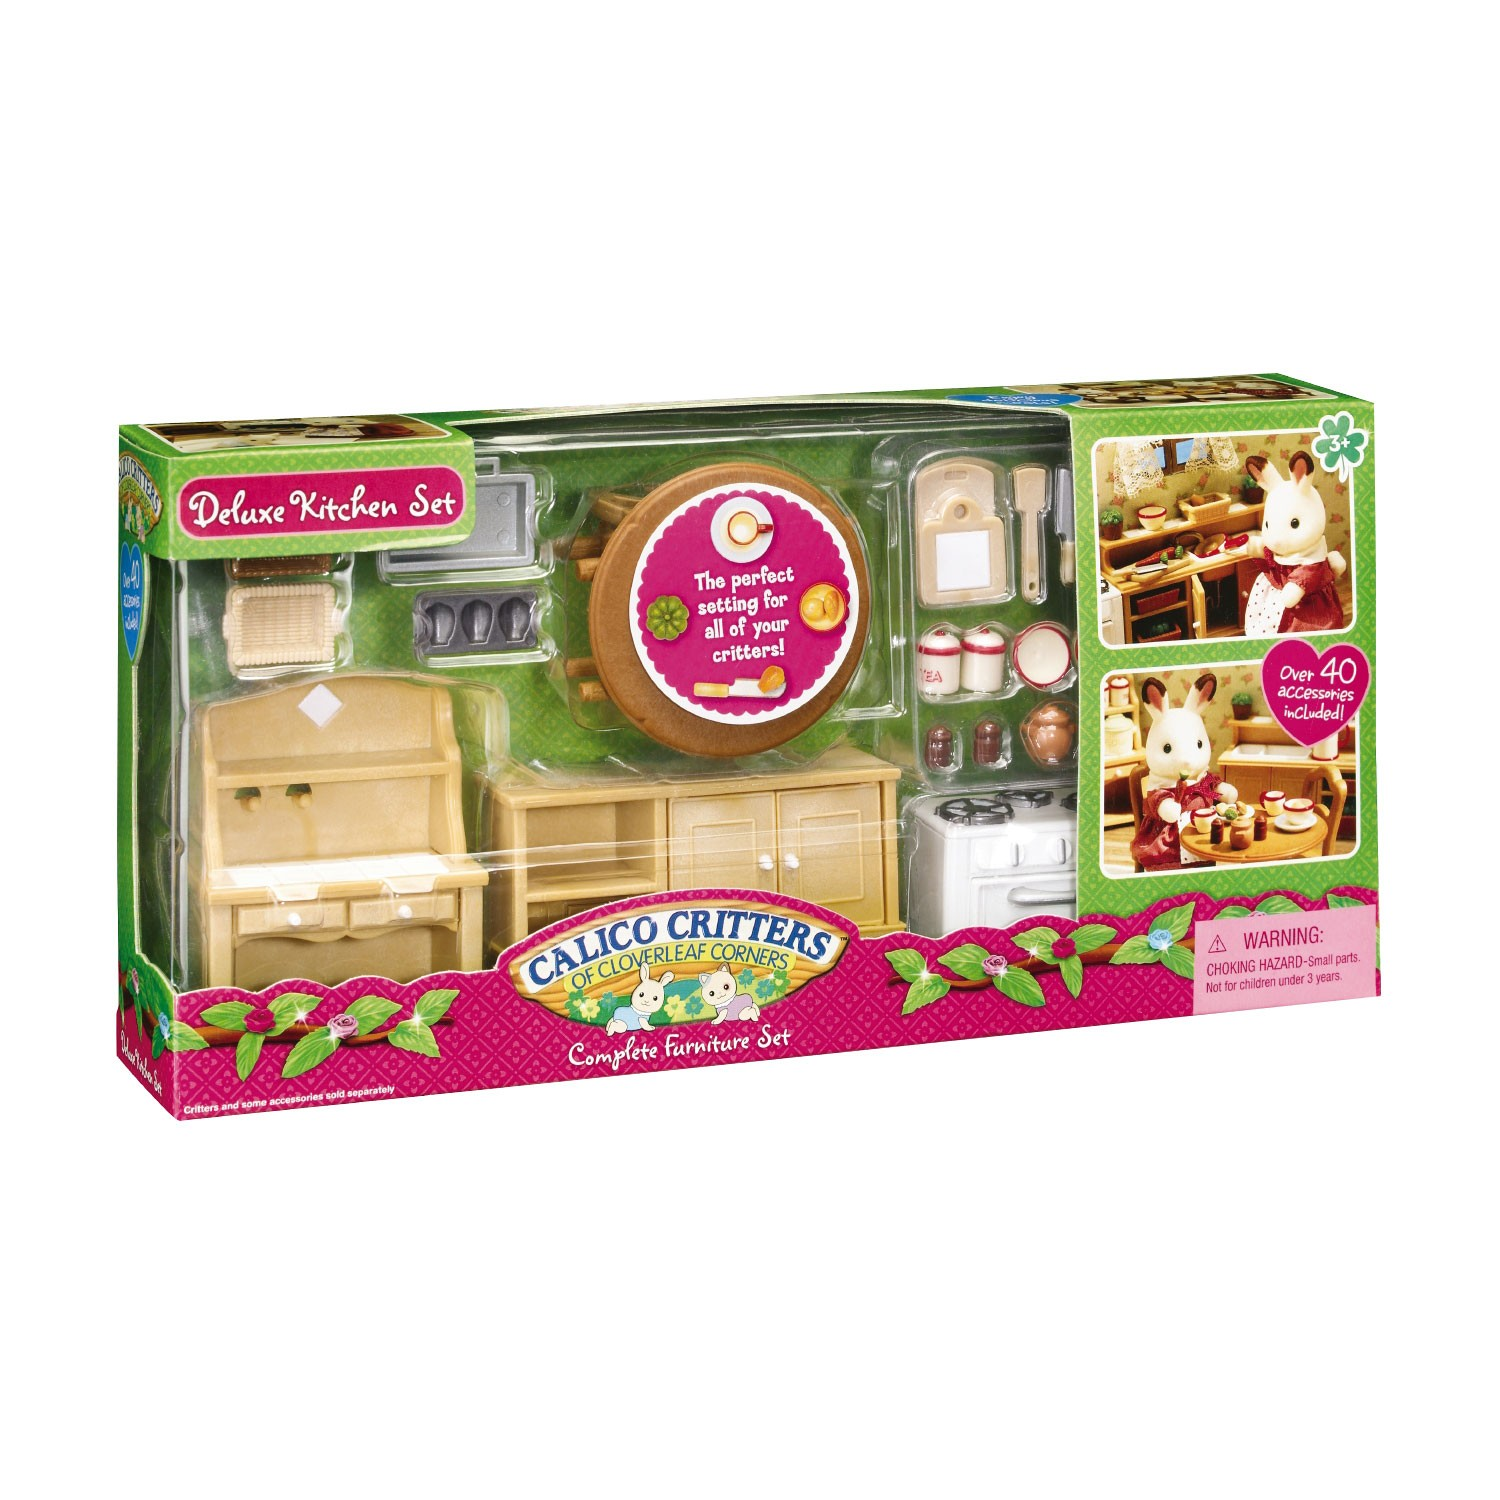 Calico Critters Deluxe Kitchen Set   Packaging 1500x1500